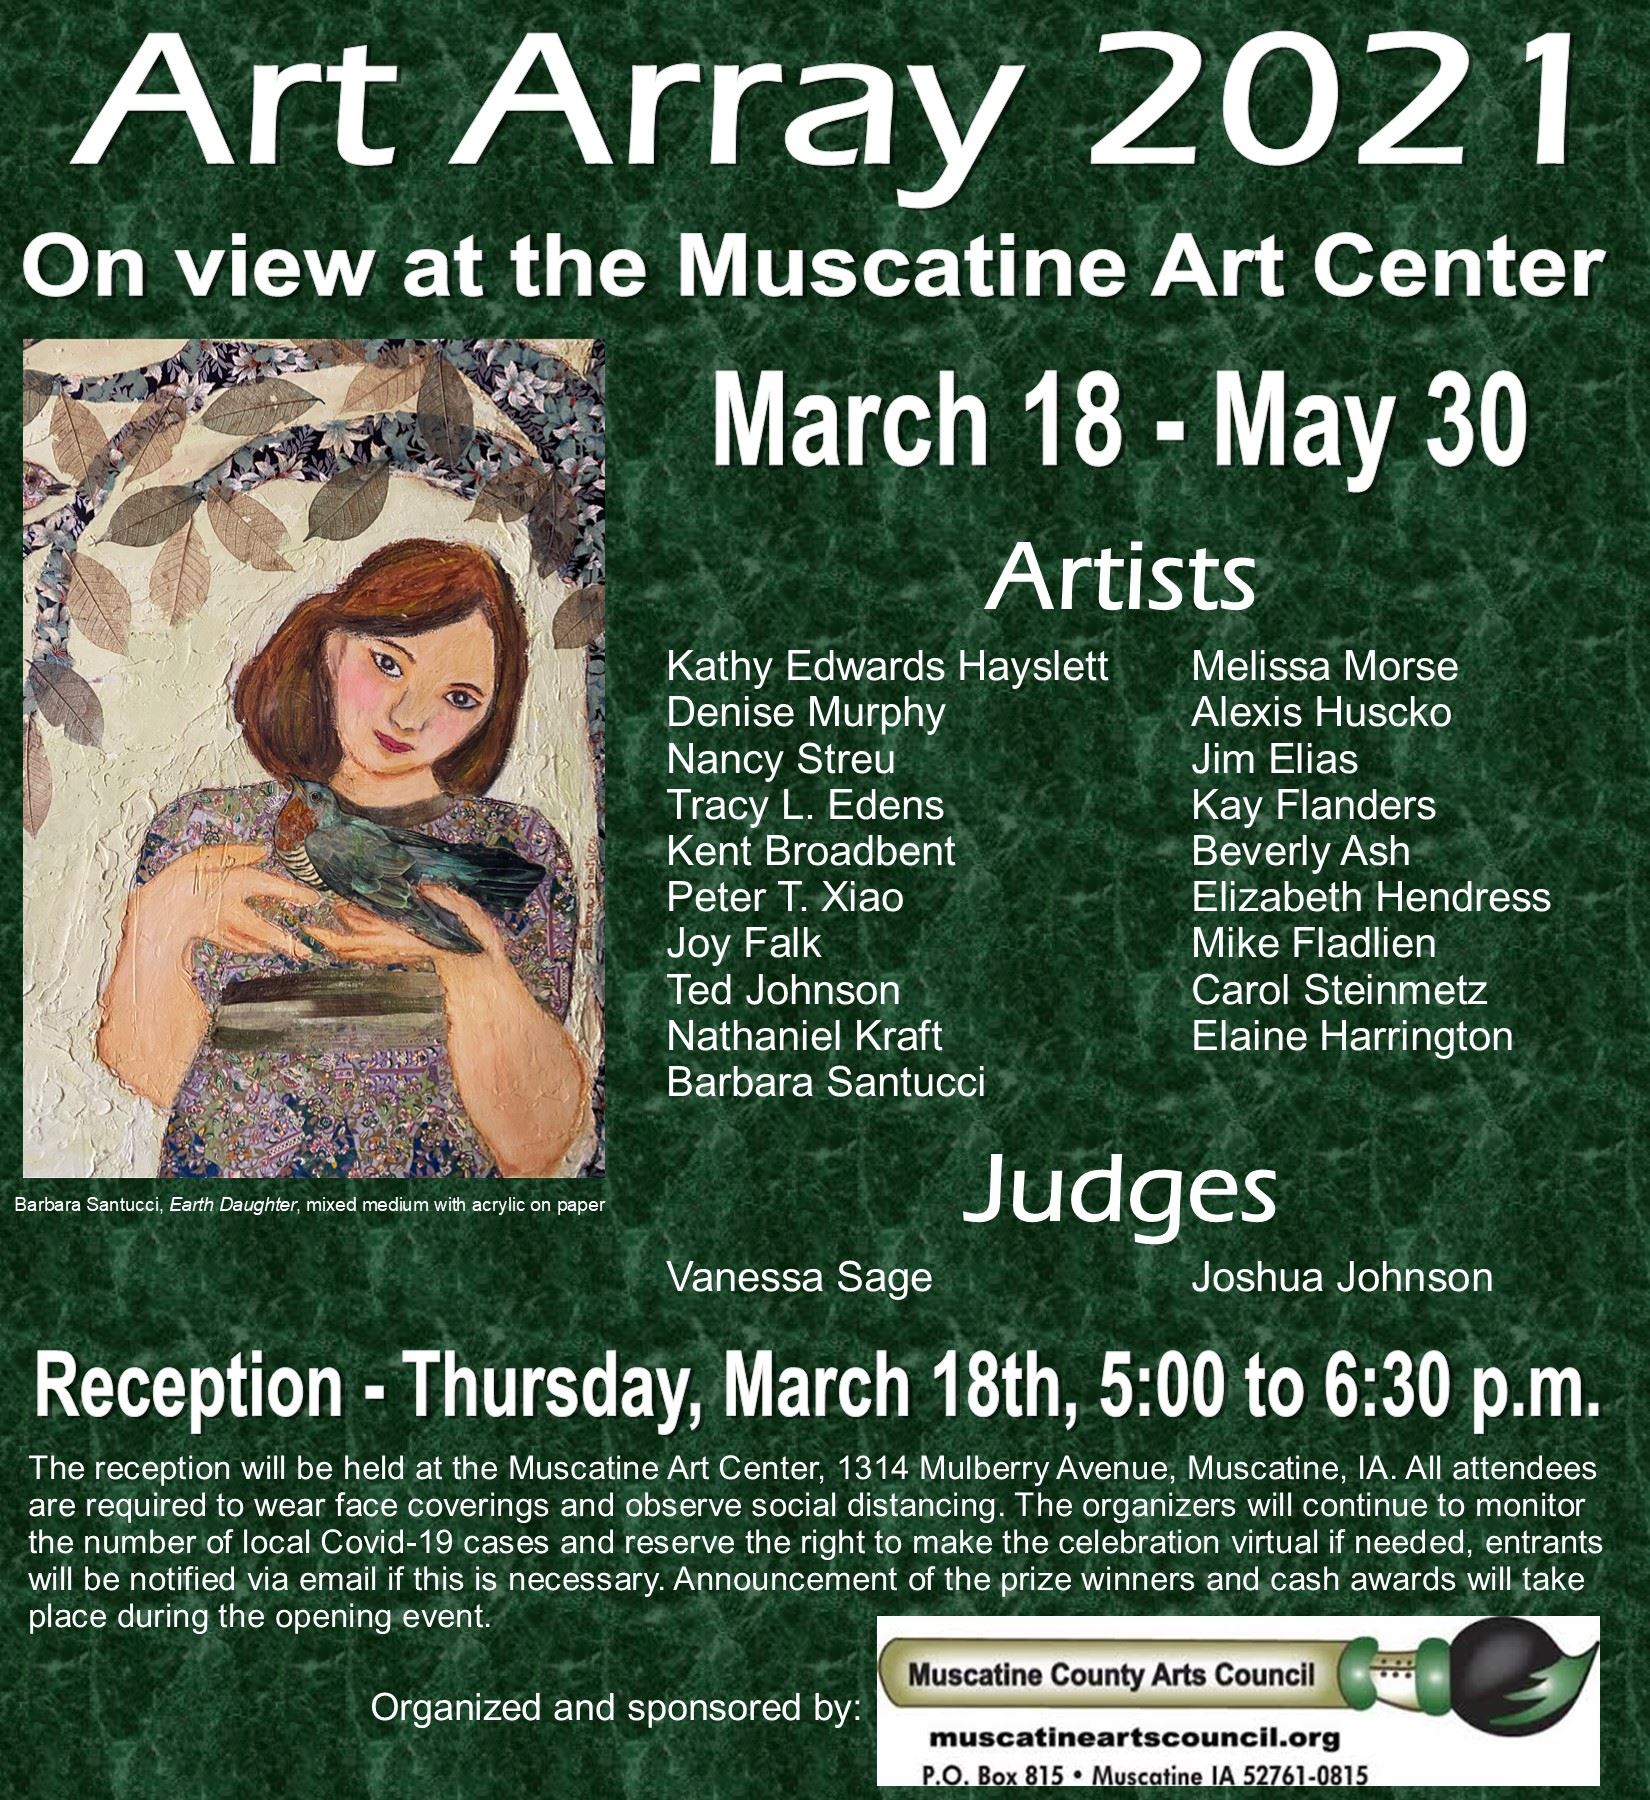 Art Array 2021 Reception